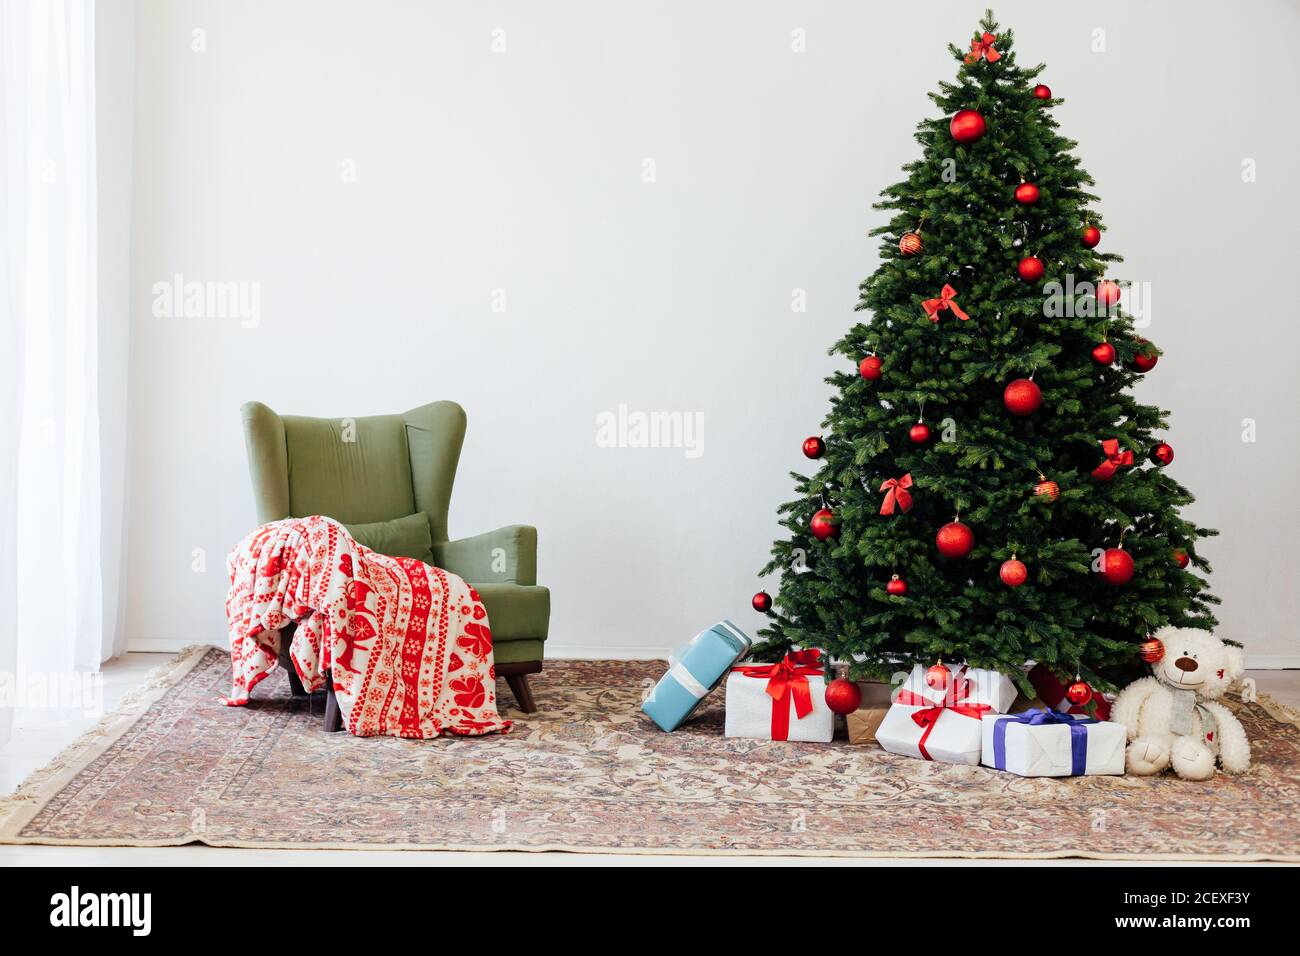 The Interior Of The White Room Is A Green Christmas Tree With Red Gifts For The New Year Decor Stock Photo Alamy